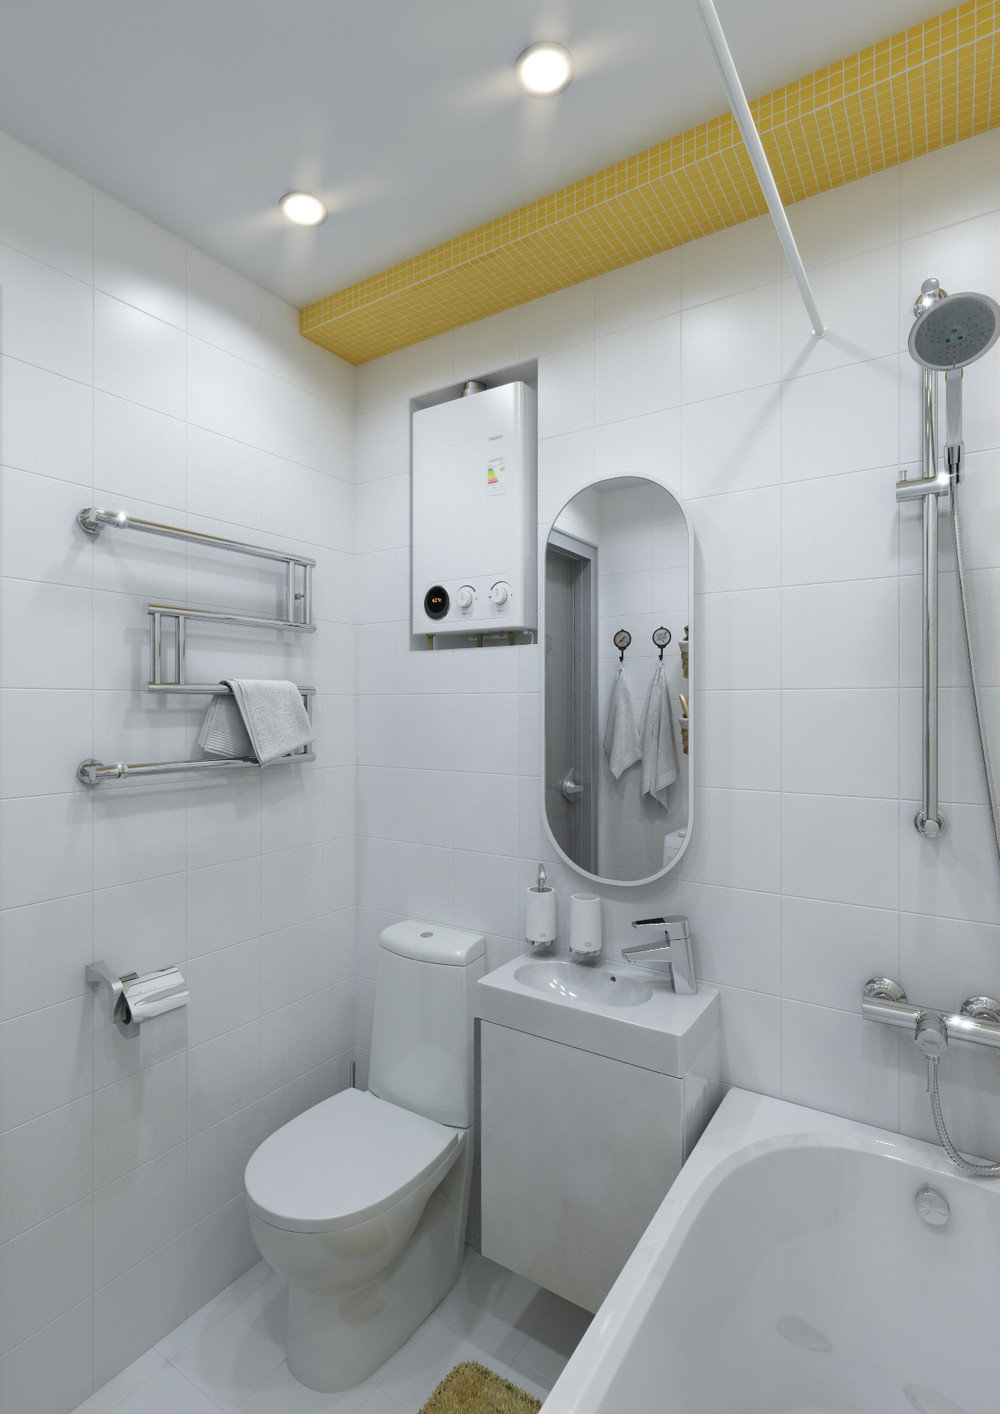 4 inspiring home designs under 300 square feet with floor for Tiny bathroom design plans